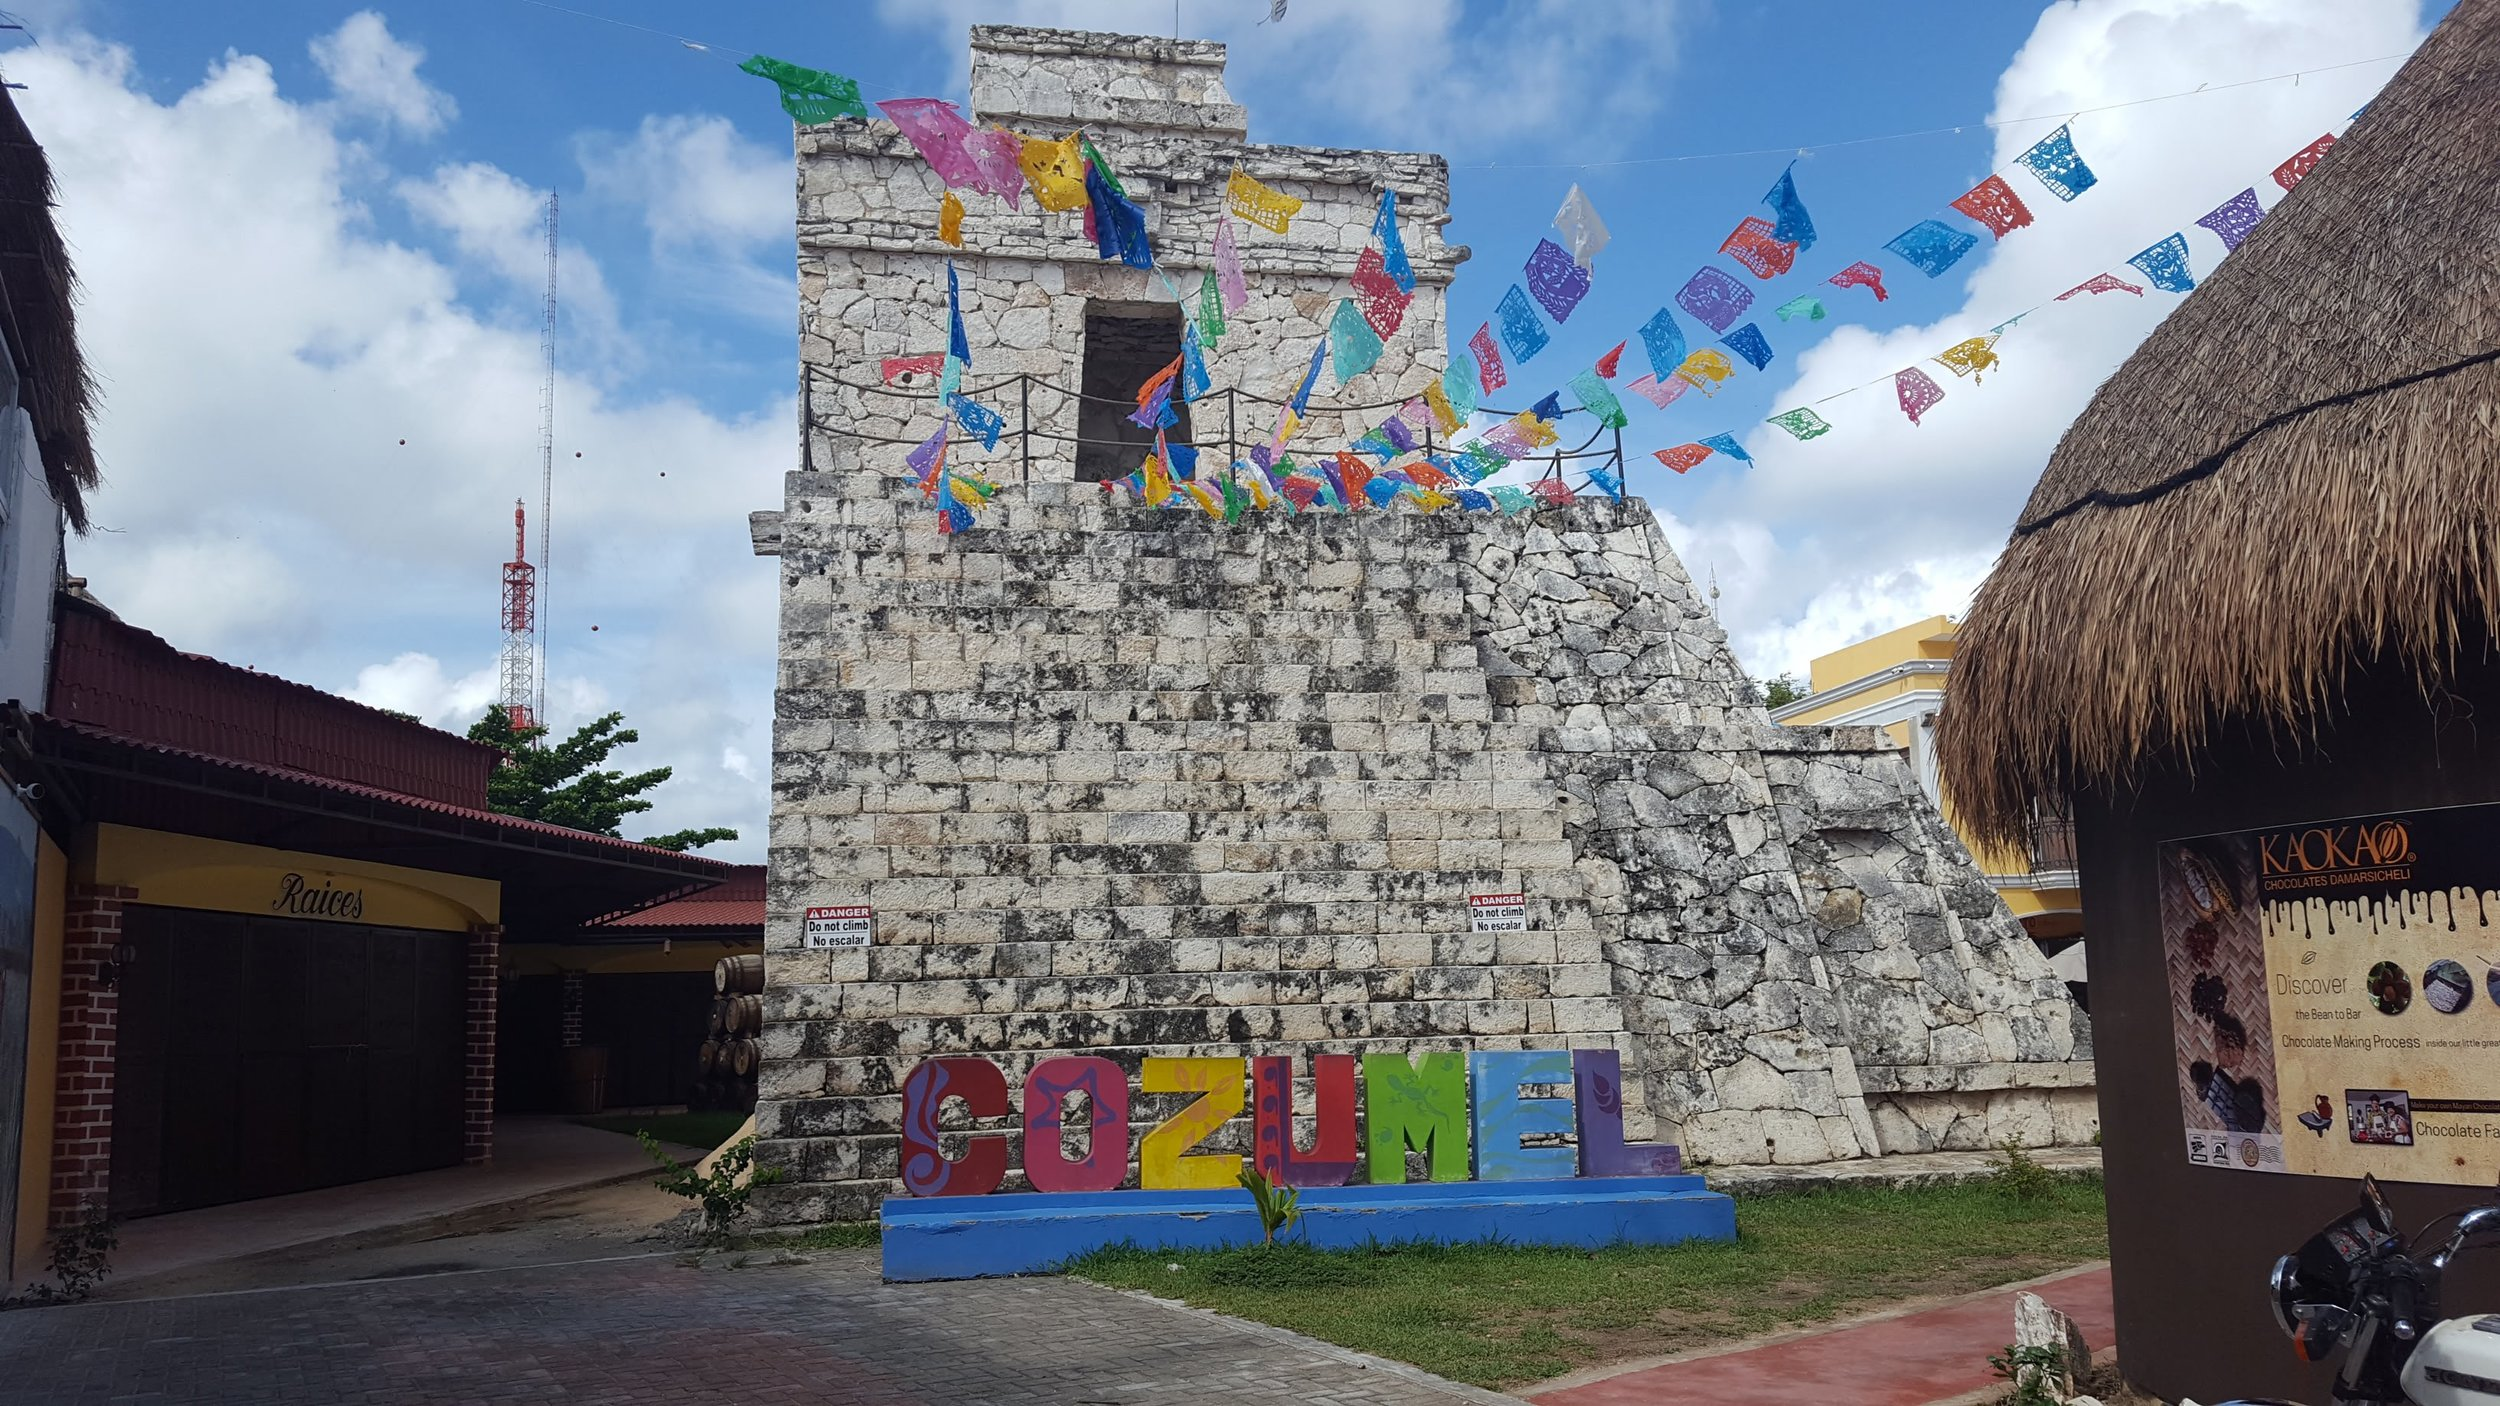 A beautiful tourist monument in downtown Cozumel amidst the shops, Cozumel, Mexico 2019